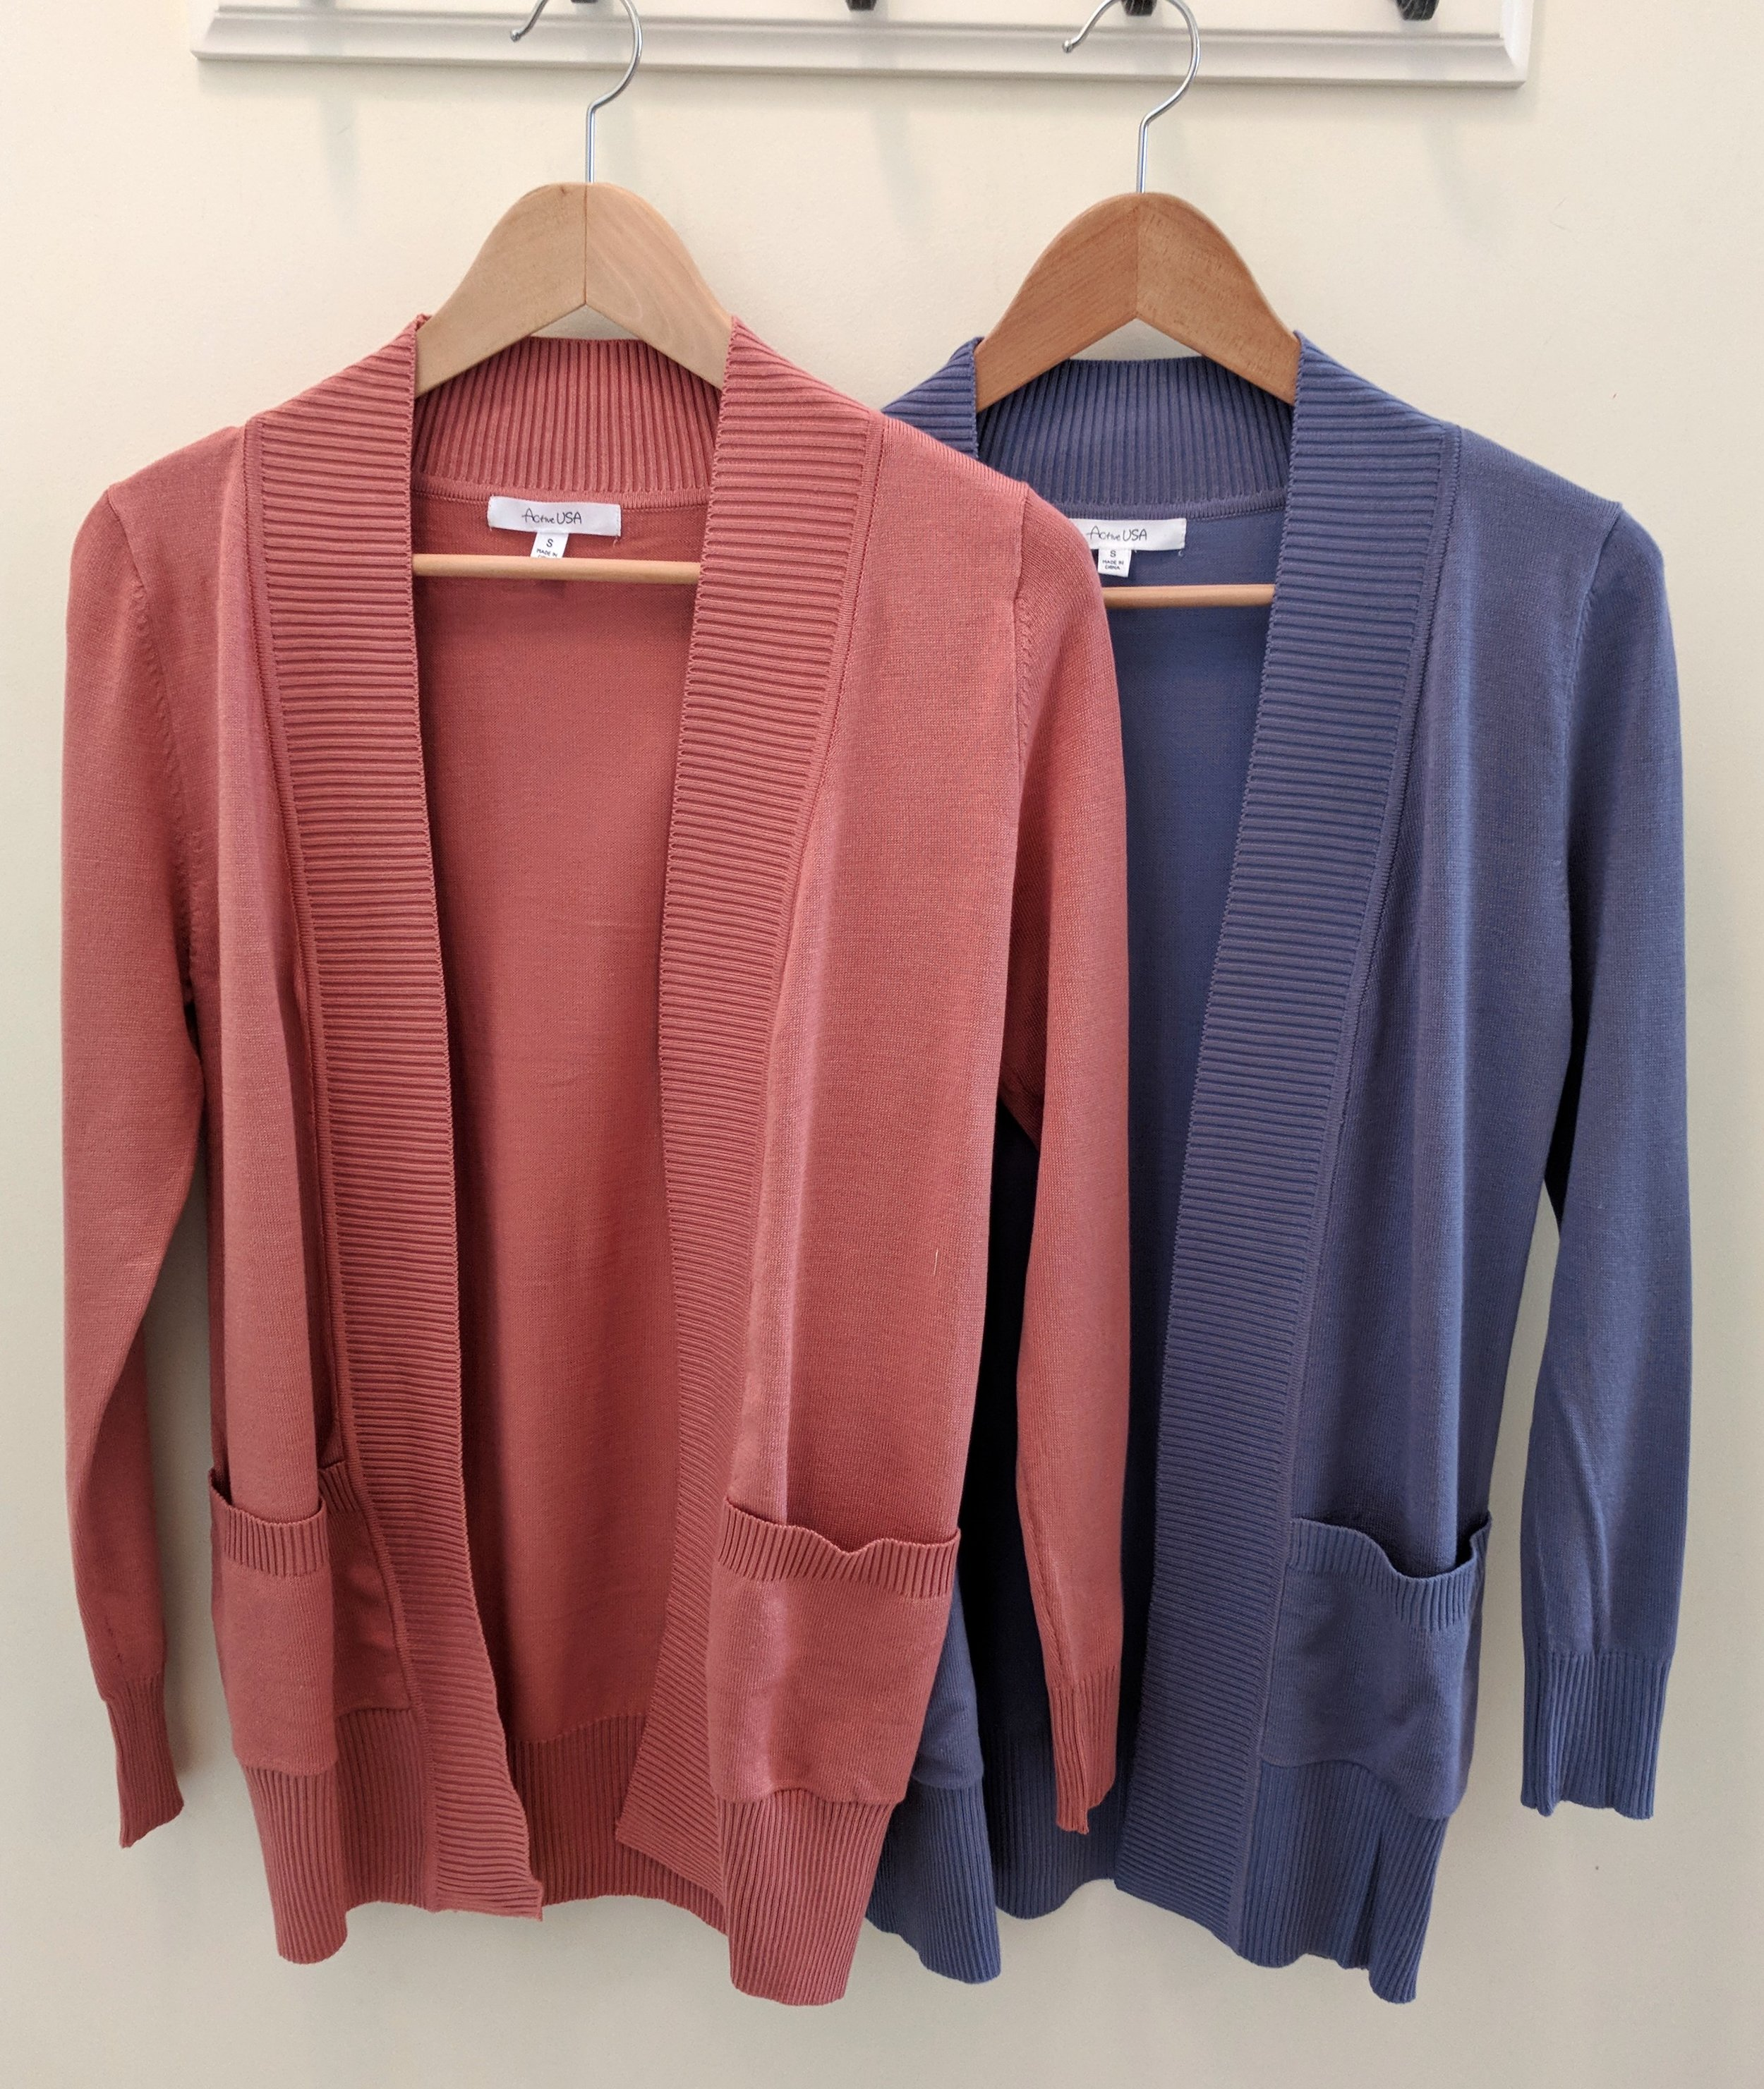 Rosy Pink and Soft Purple Cardigan $34